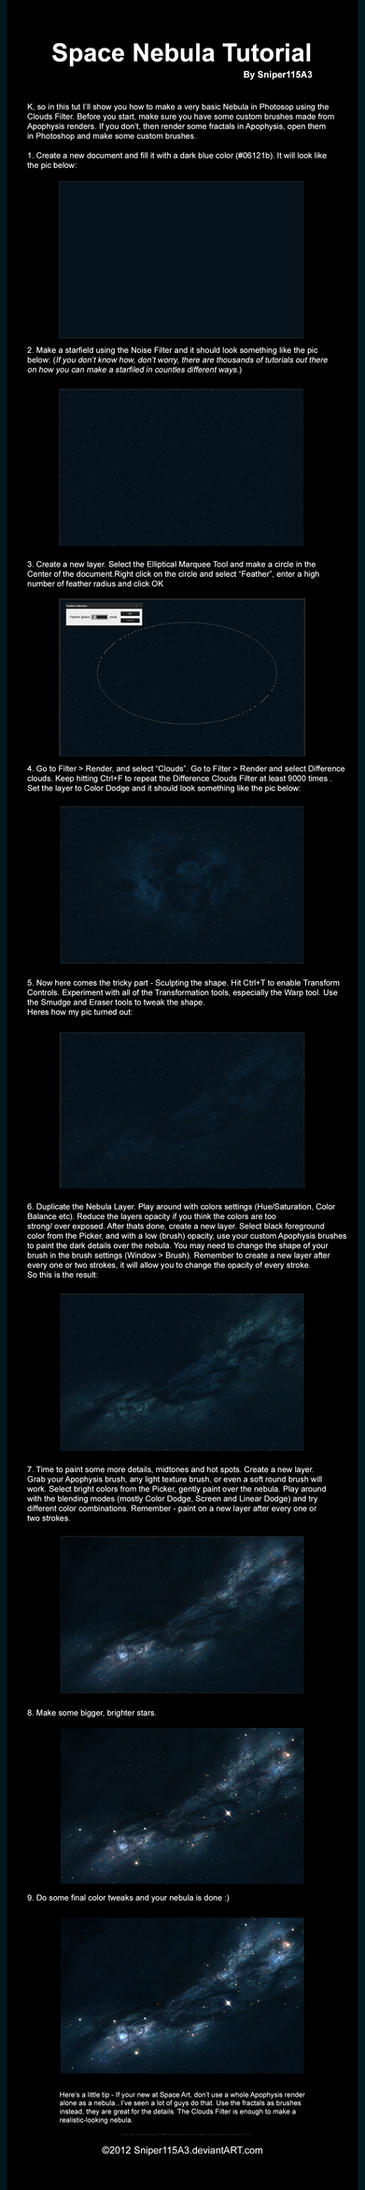 Space Nebula Tutorial by Sniper115A3